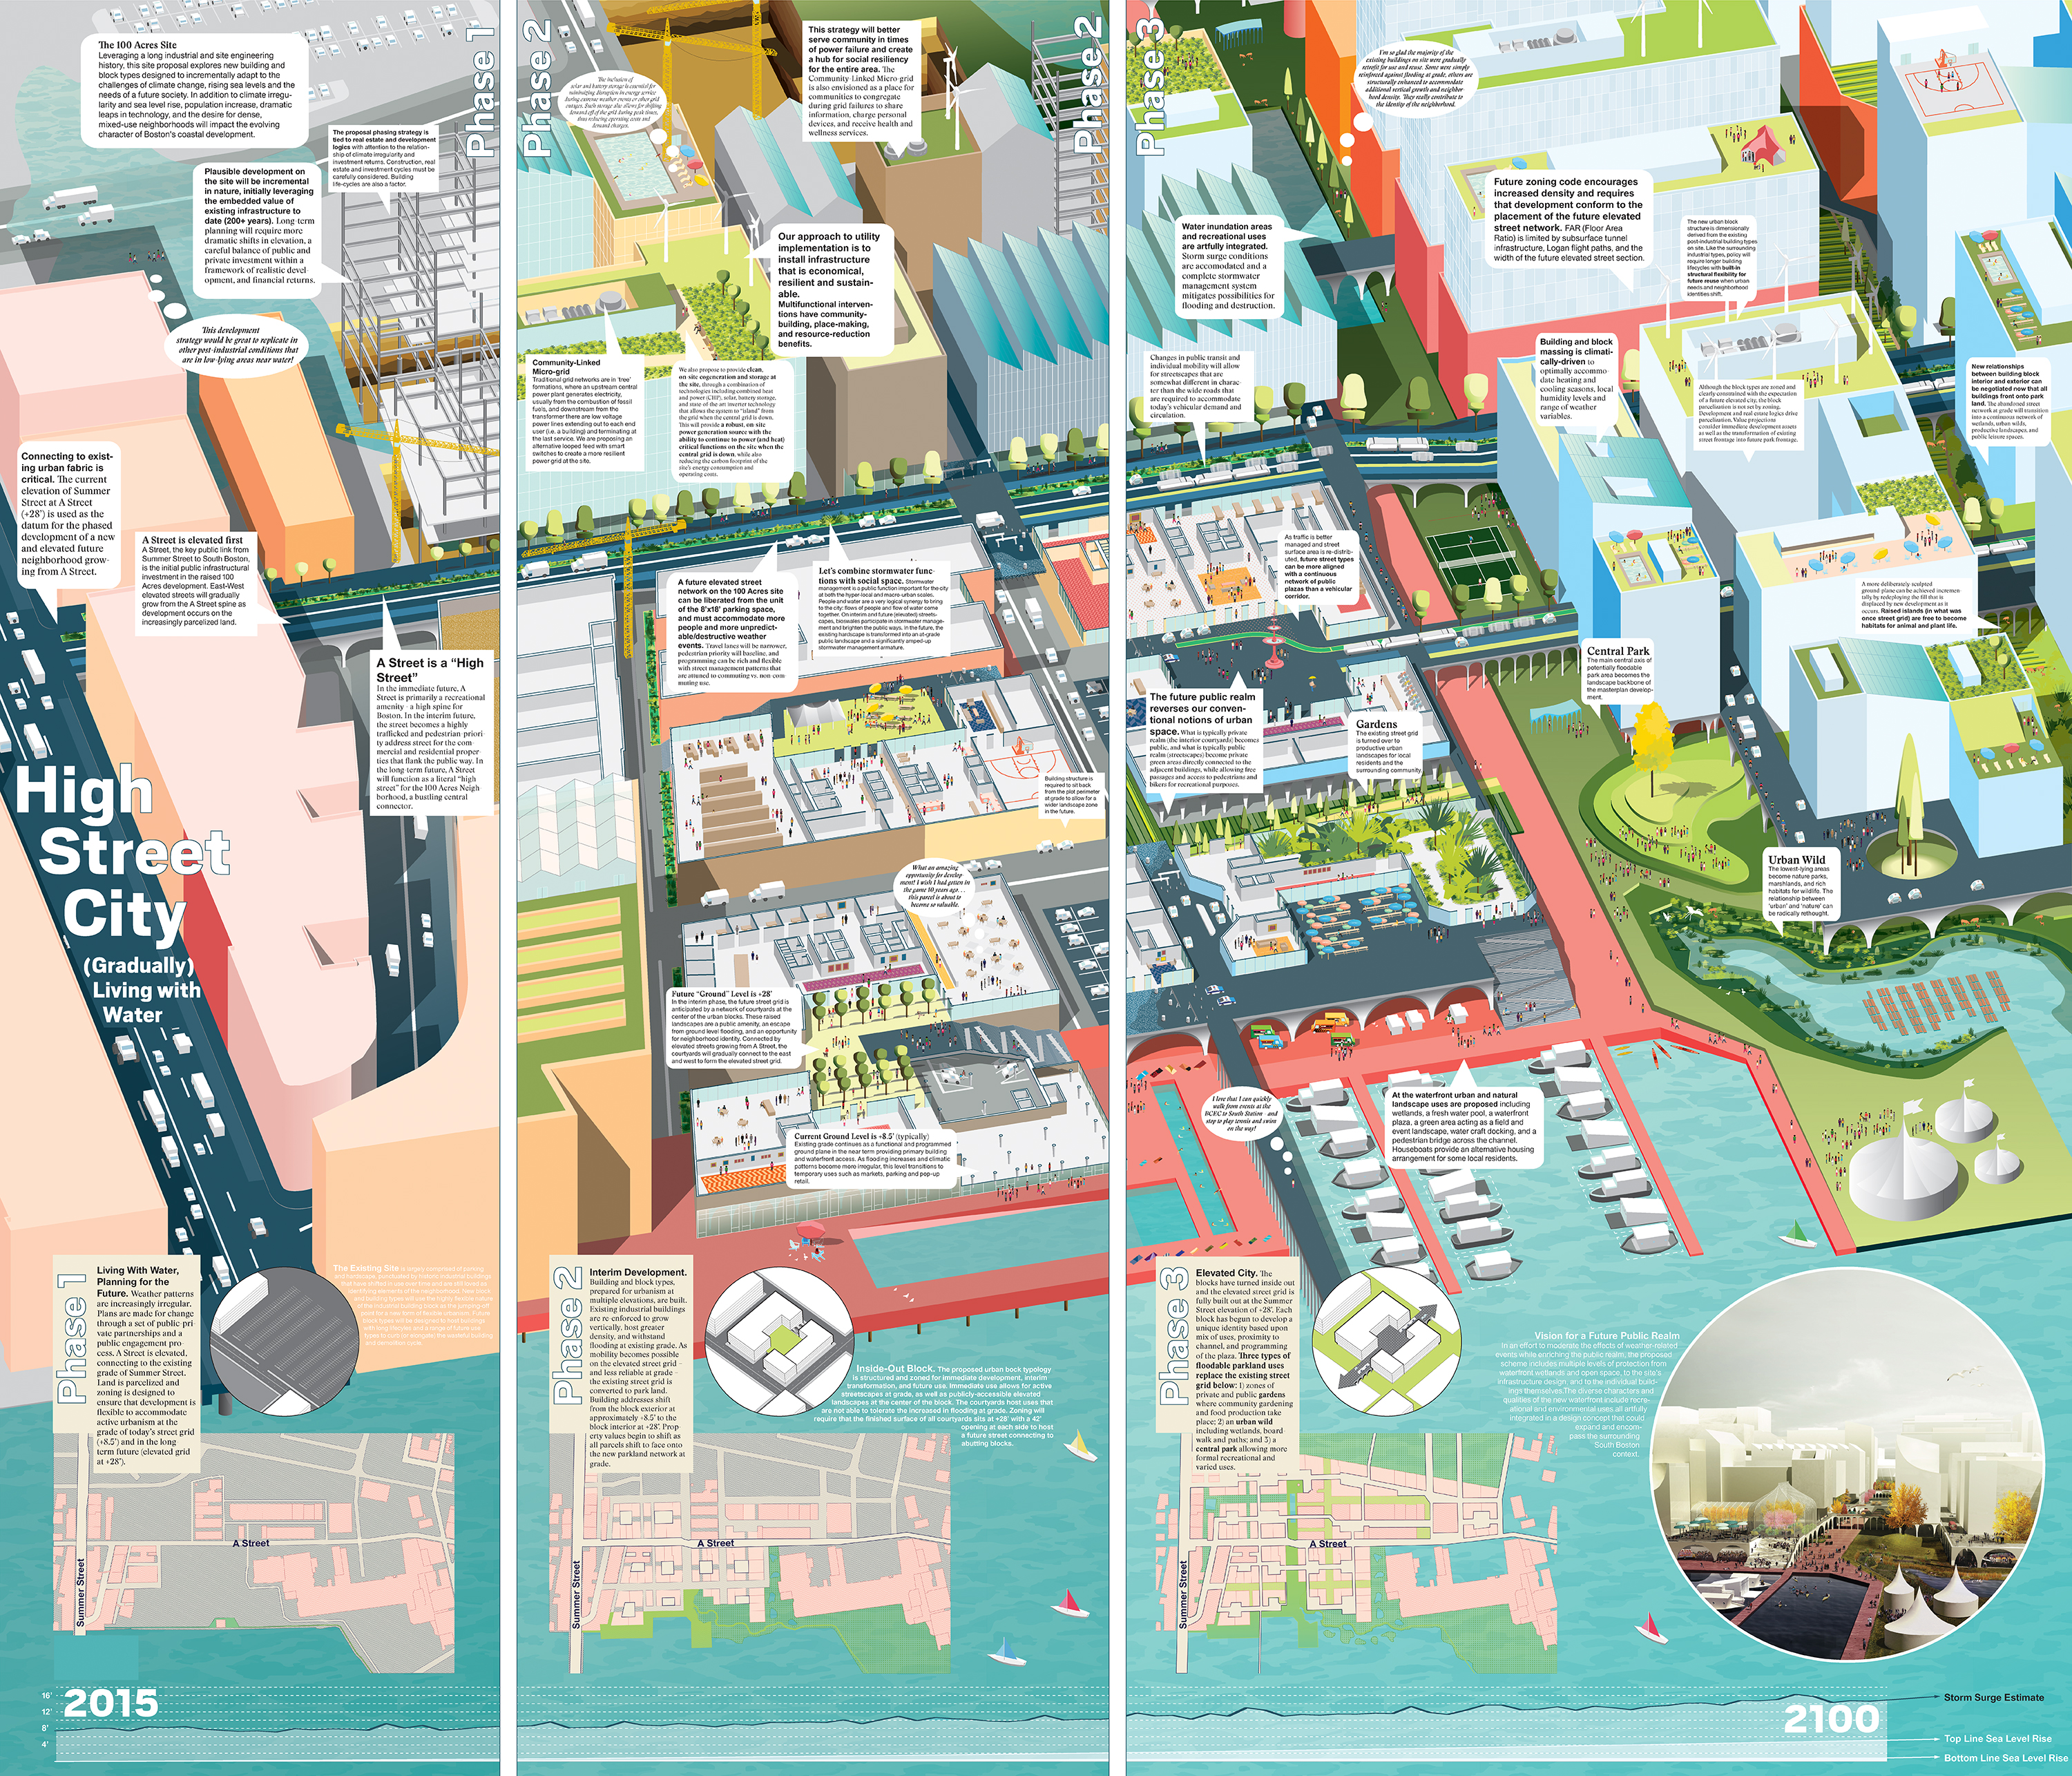 City Living Design : High Street City: (Gradually) Living with Water – Utile ...